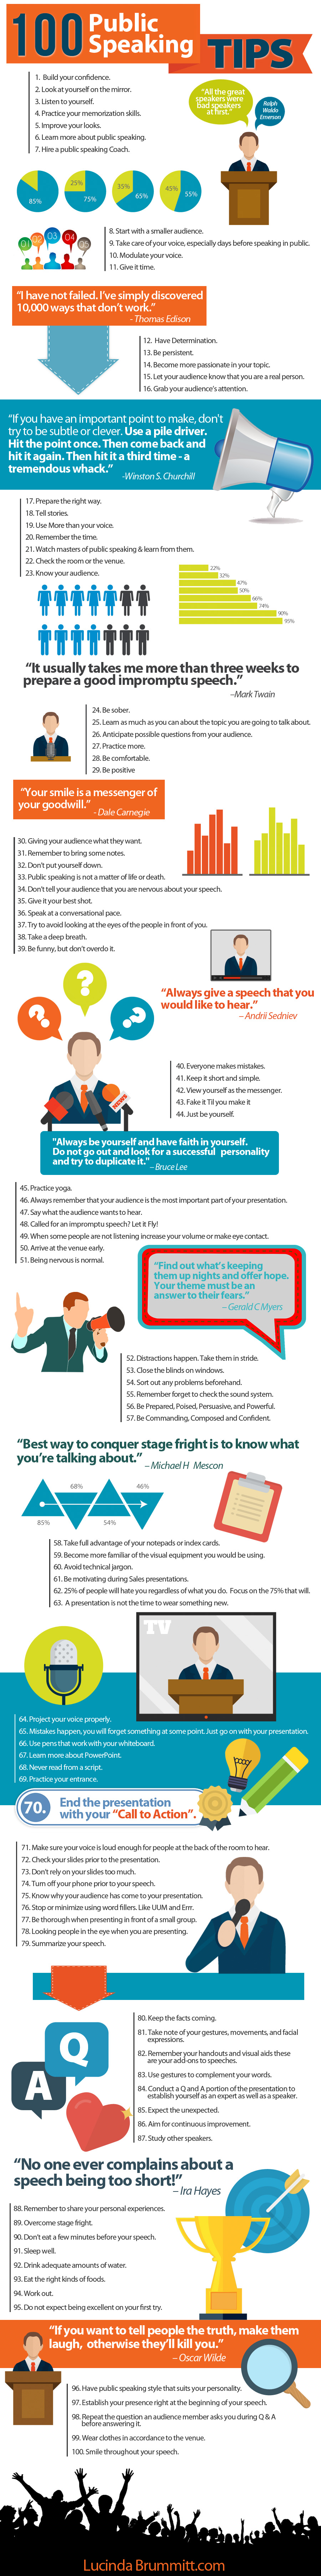 100 Speaking Tips Infographic